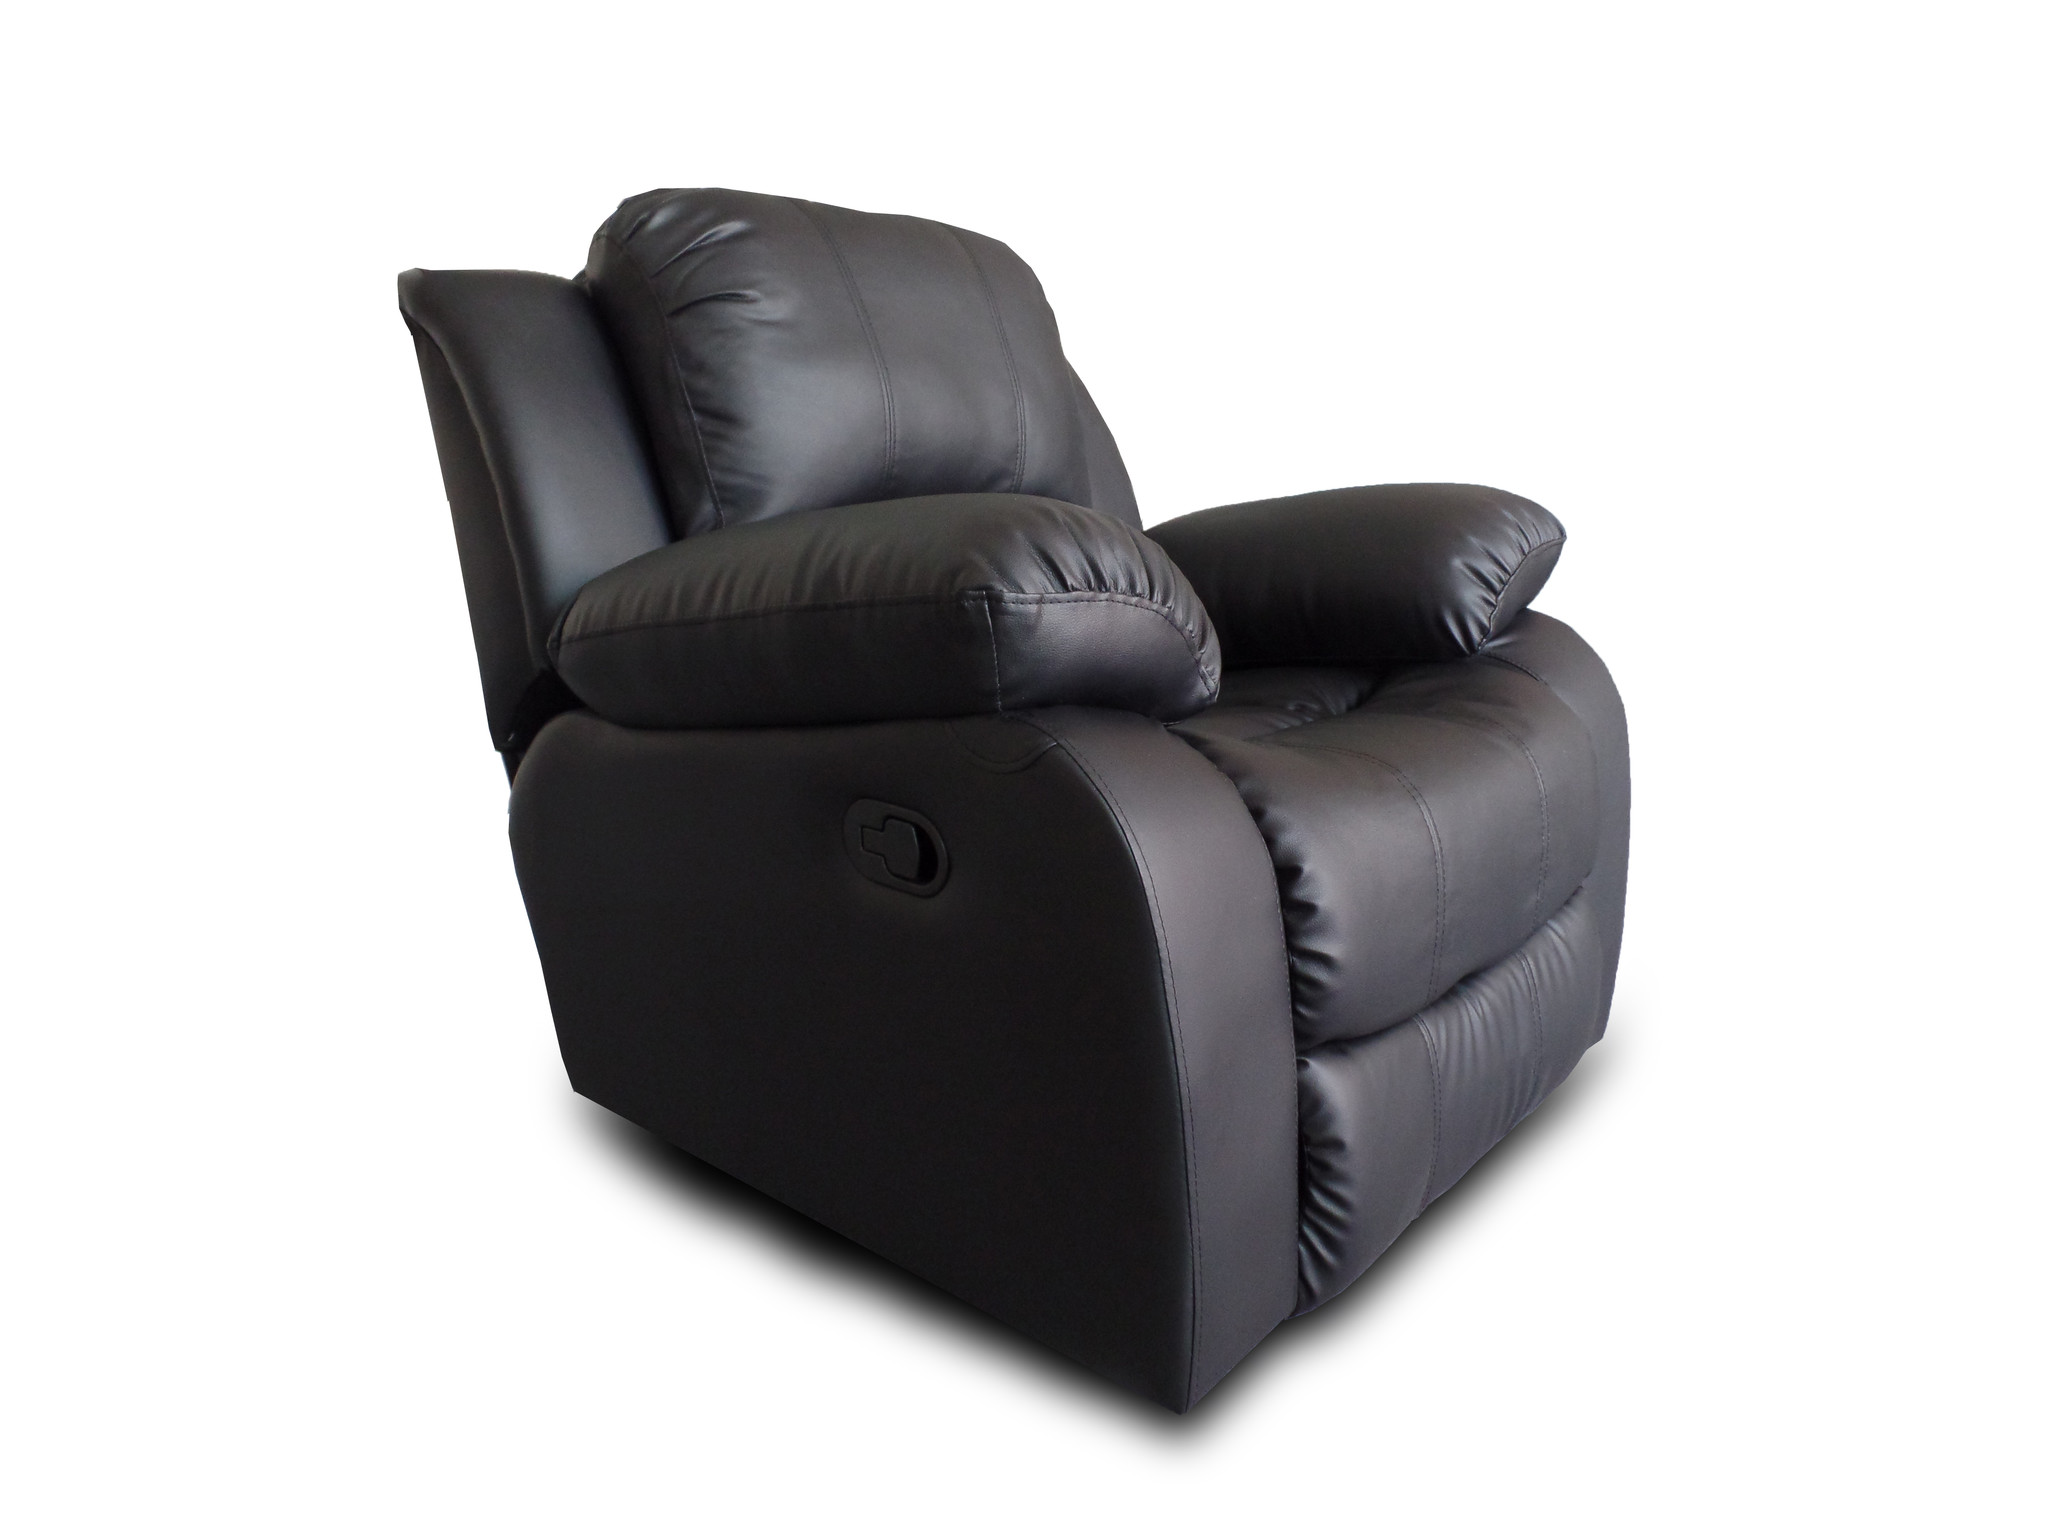 Classic Oversize And Overstuffed Single Seat Bonded Leather Recliner Chair    Walmart.com